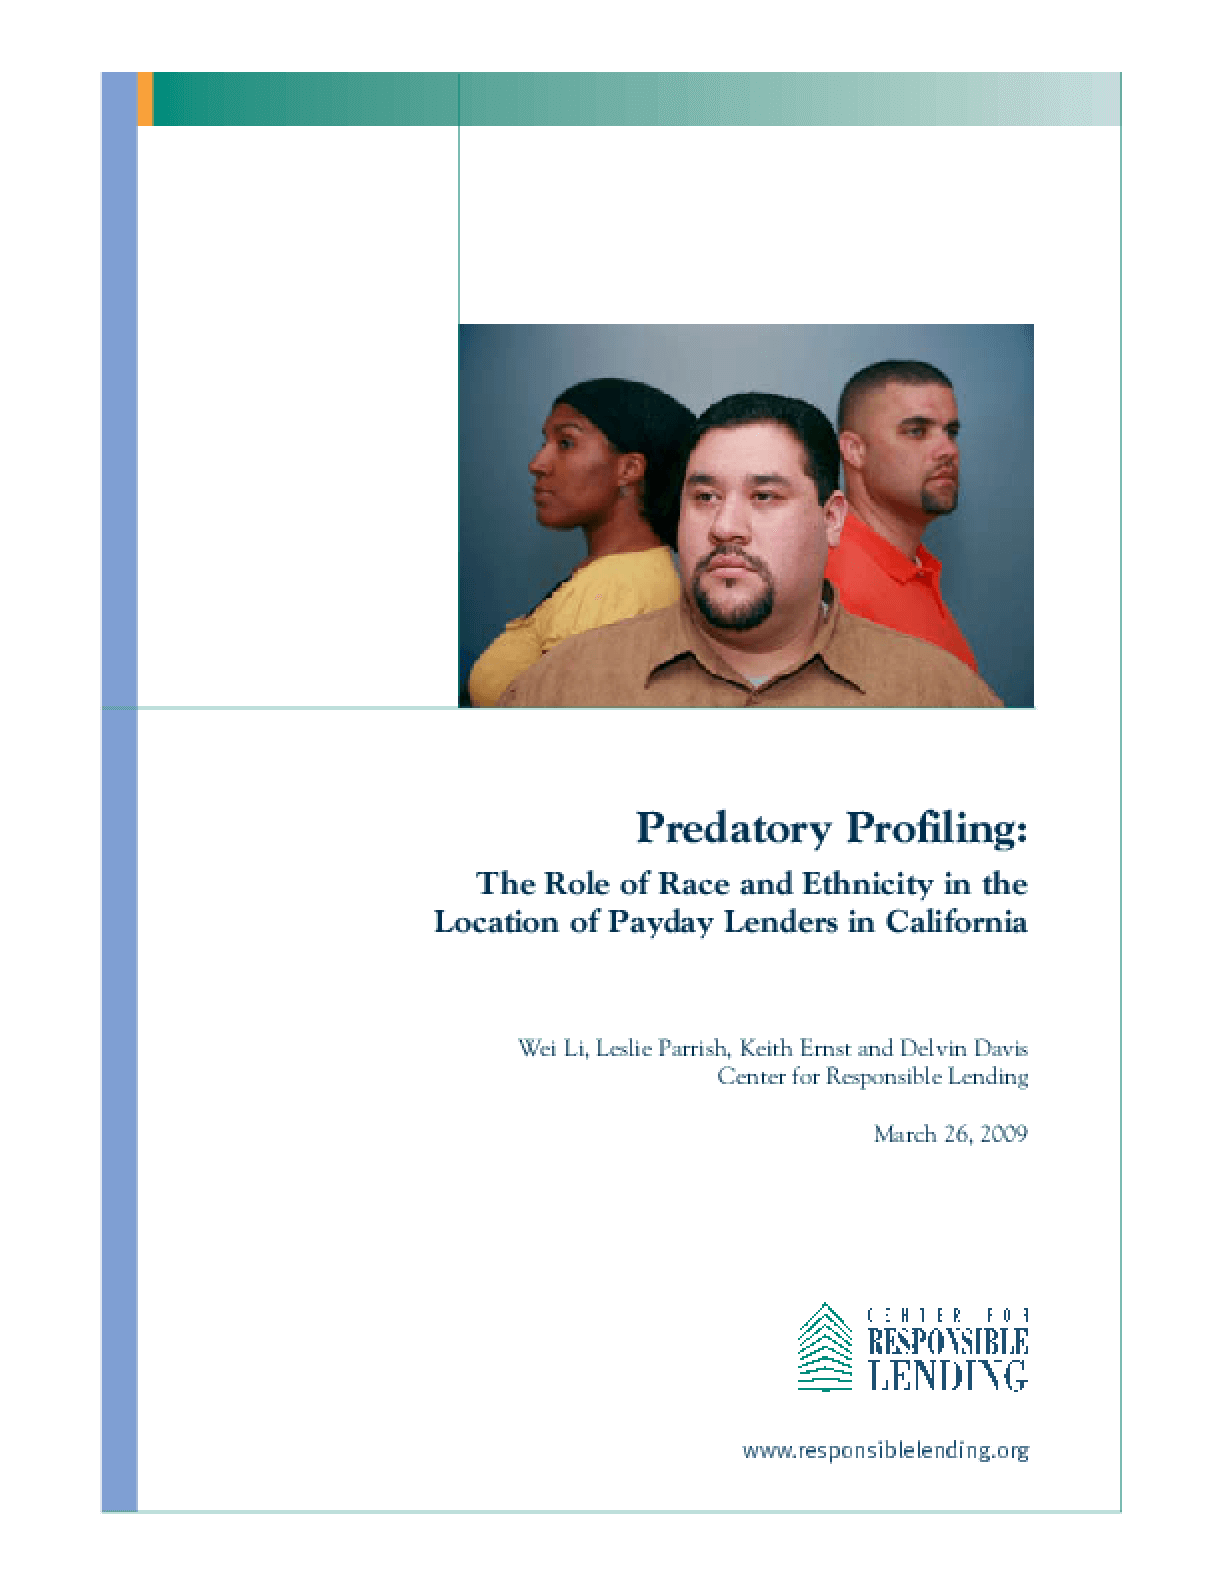 Predatory Profiling: The Role of Race and Ethnicity in the Location of Payday Lenders in California